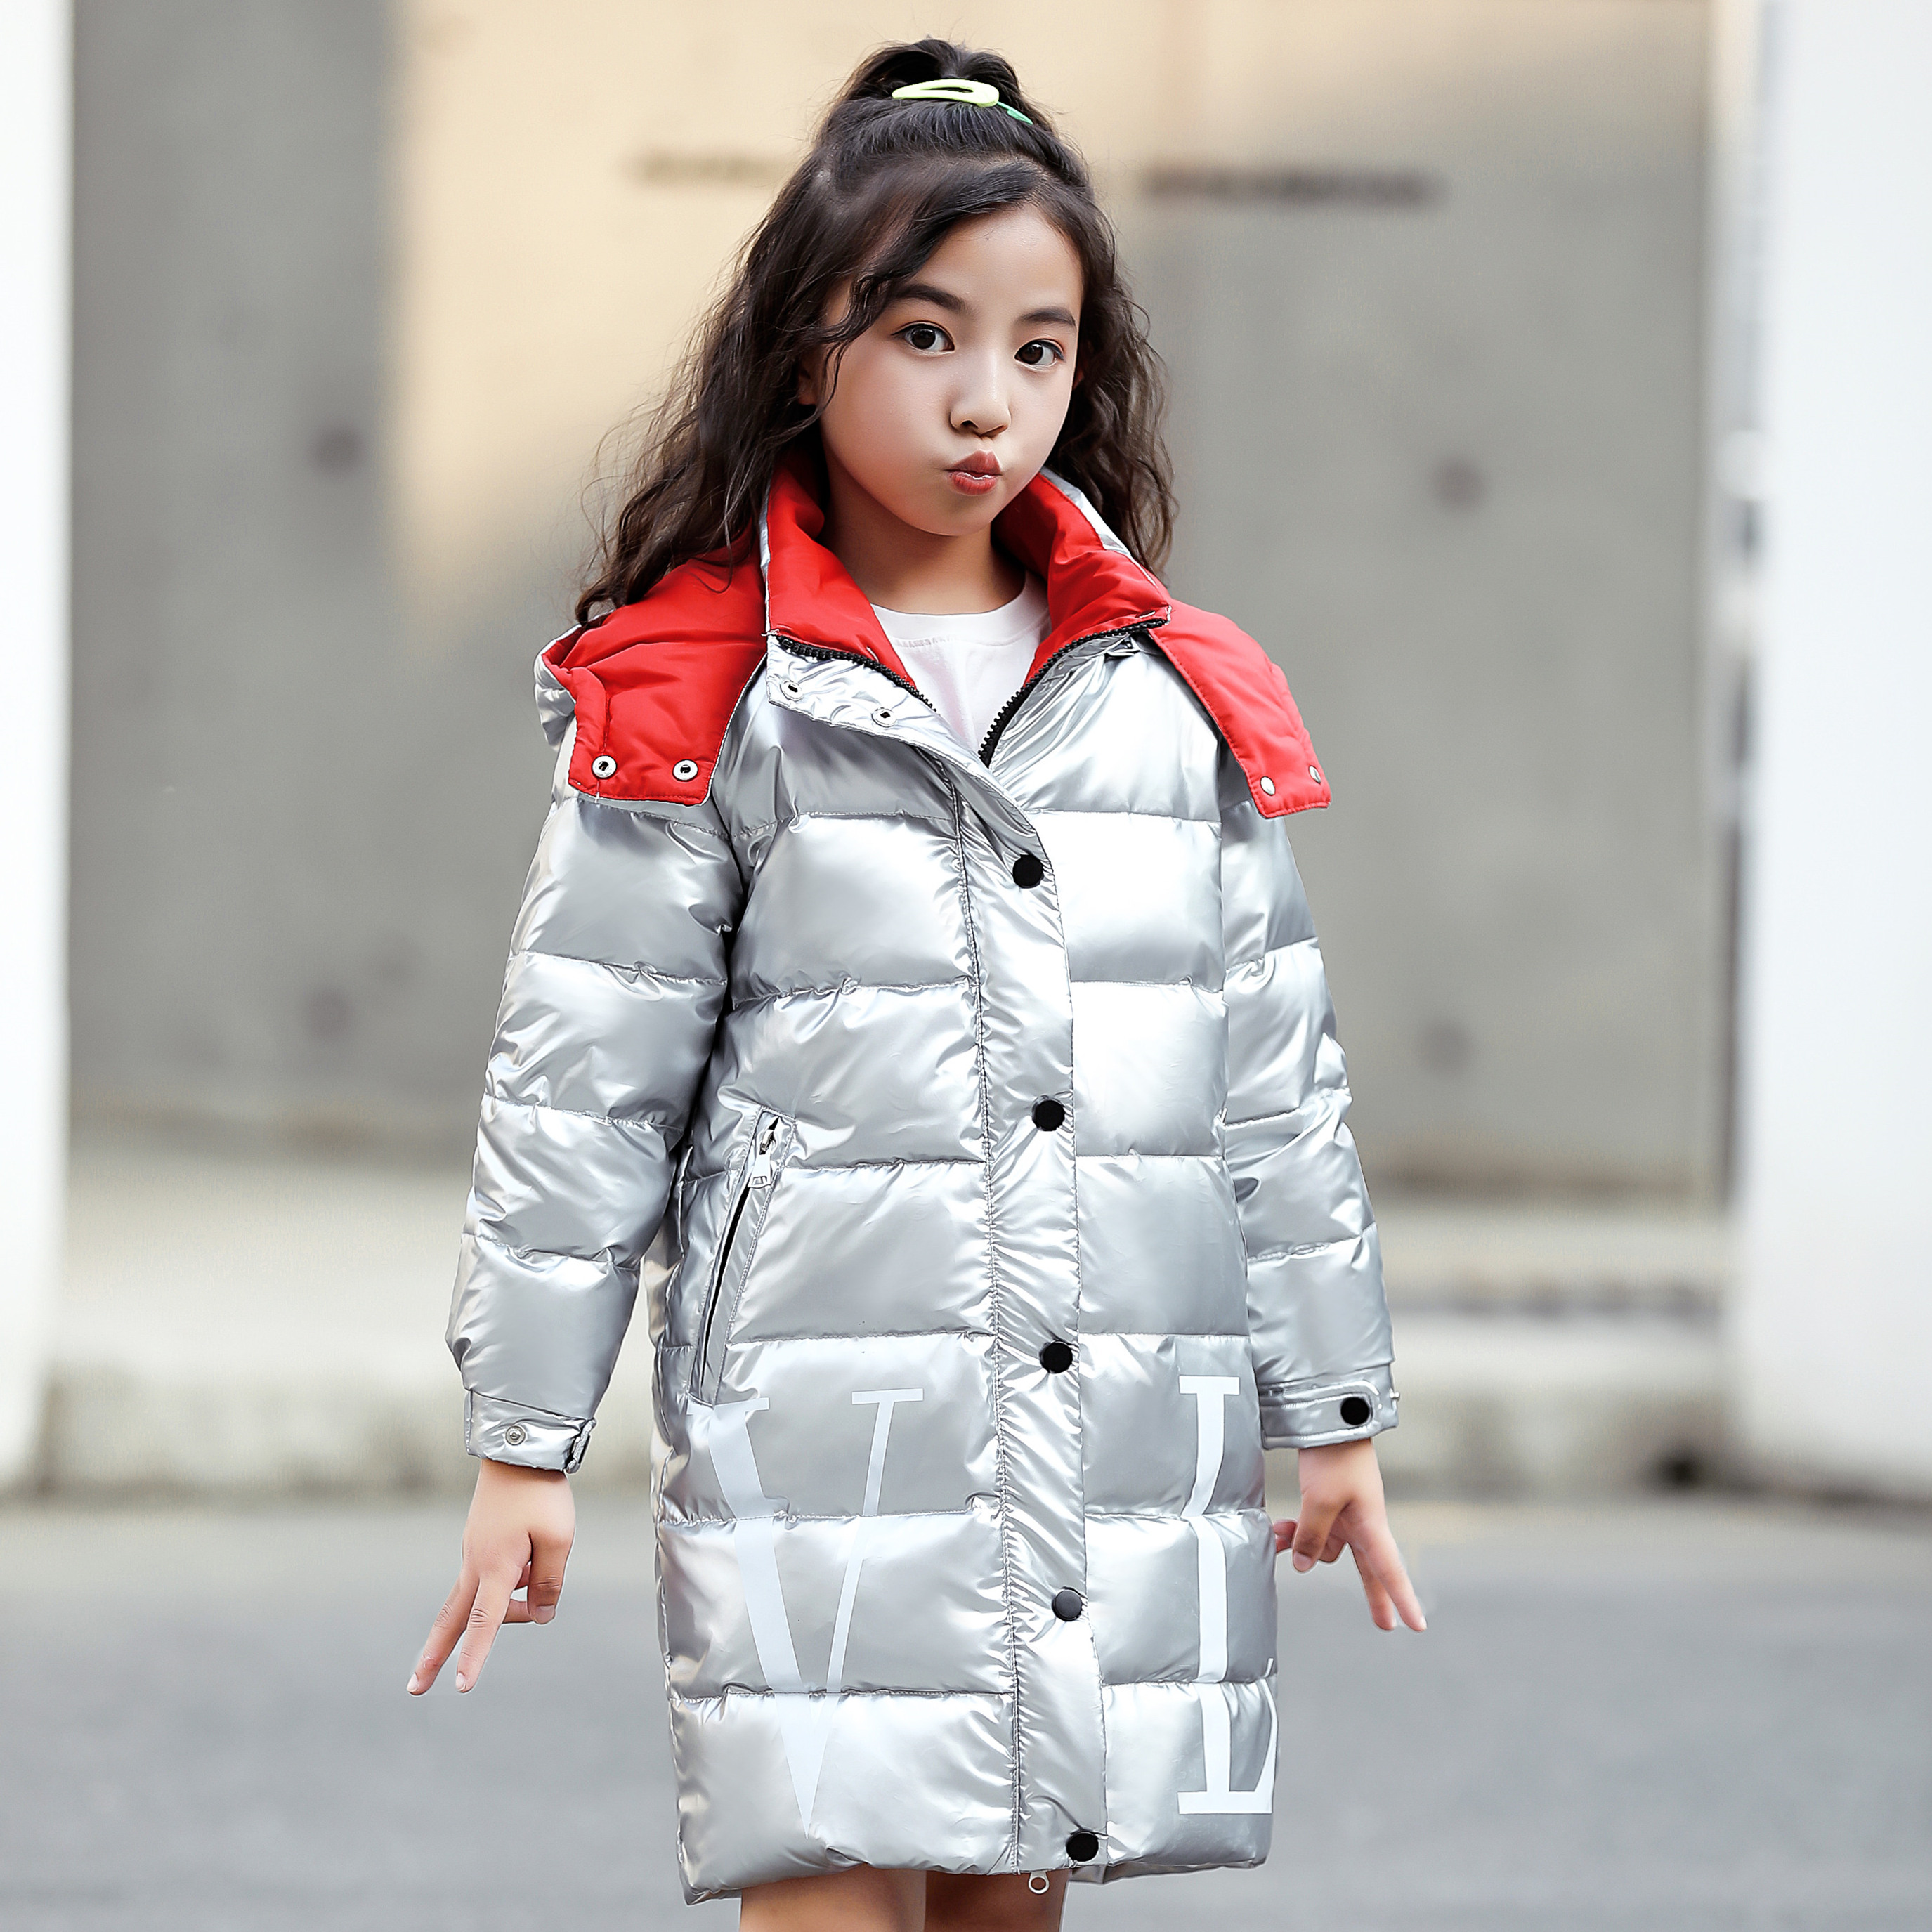 Image 2 - 2019 Children Winter Warm White duck down jackets Girls clothing waterproof Clothes Hooded long  30 degrees Coats For Kids parka-in Down & Parkas from Mother & Kids